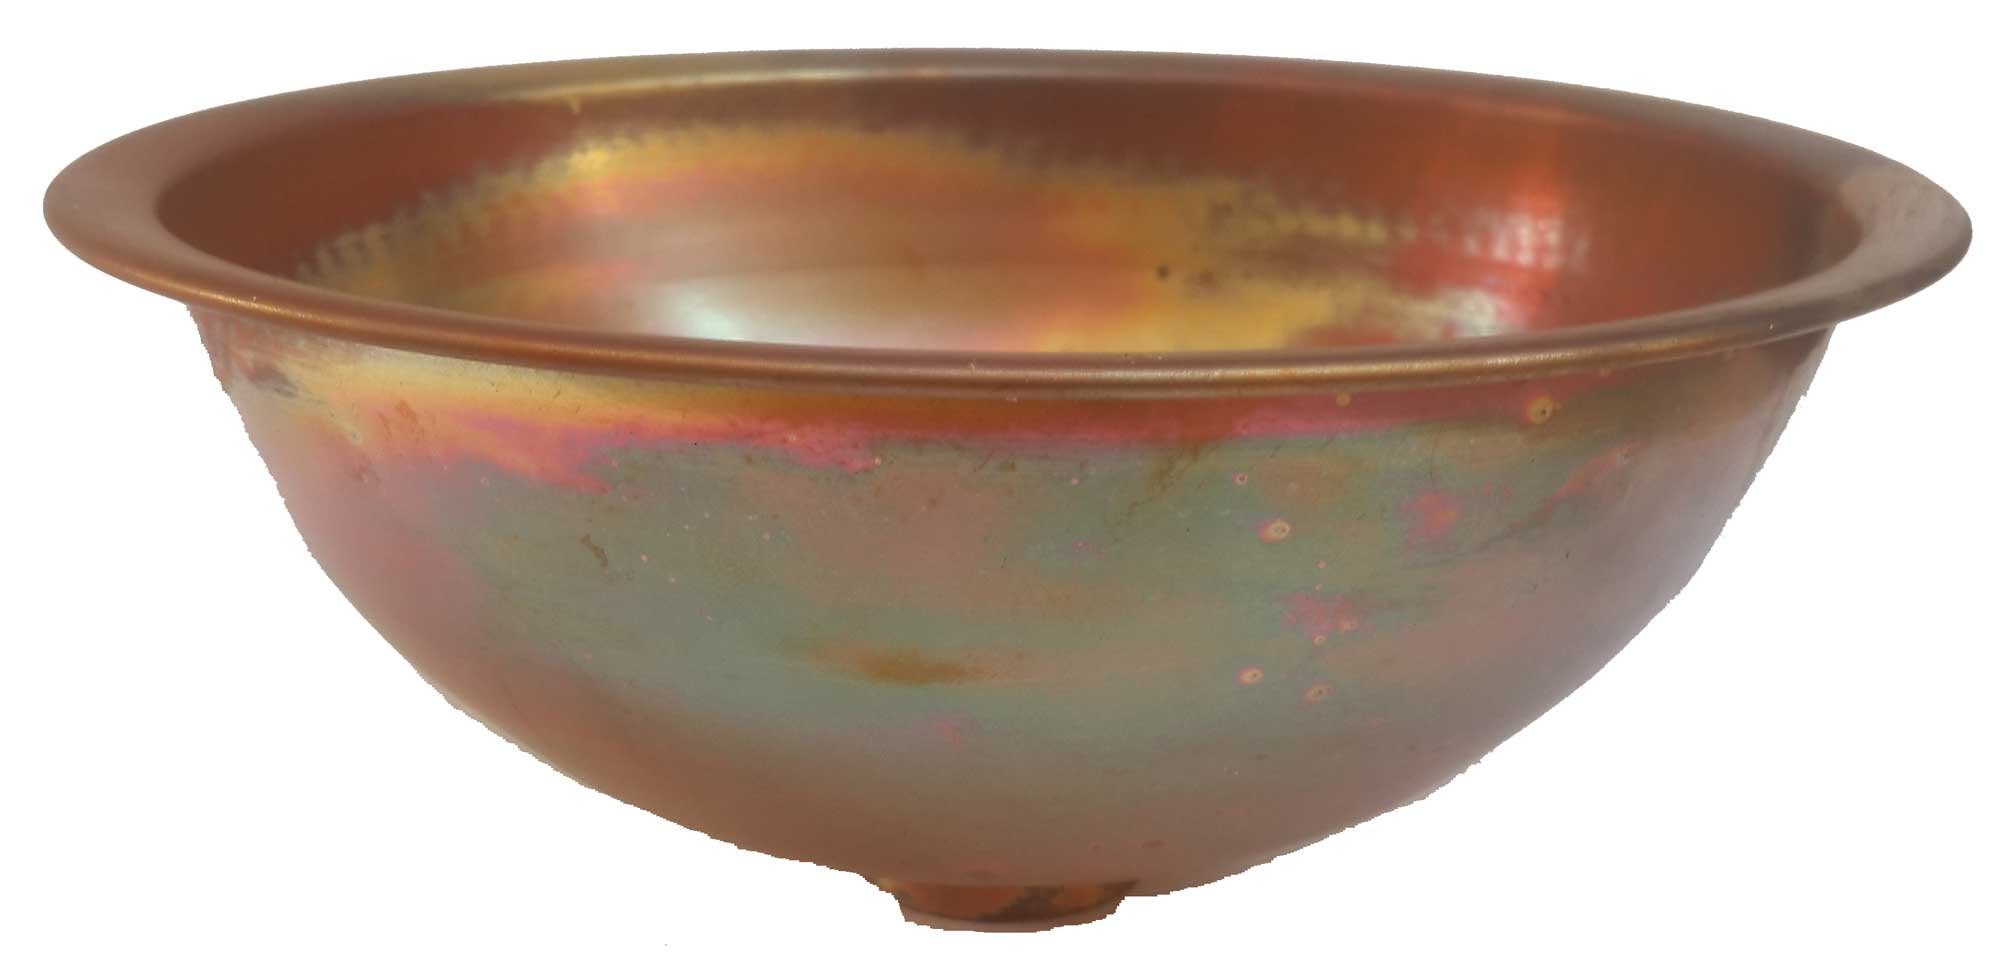 Egypt gift shops Satin Smooth Very Small Compact Copper Bowl Basin Toilet Bathroom Sink Lavatory Cabin Motor Van Caravan Portable Home Renovation by Egypt gift shops (Image #4)